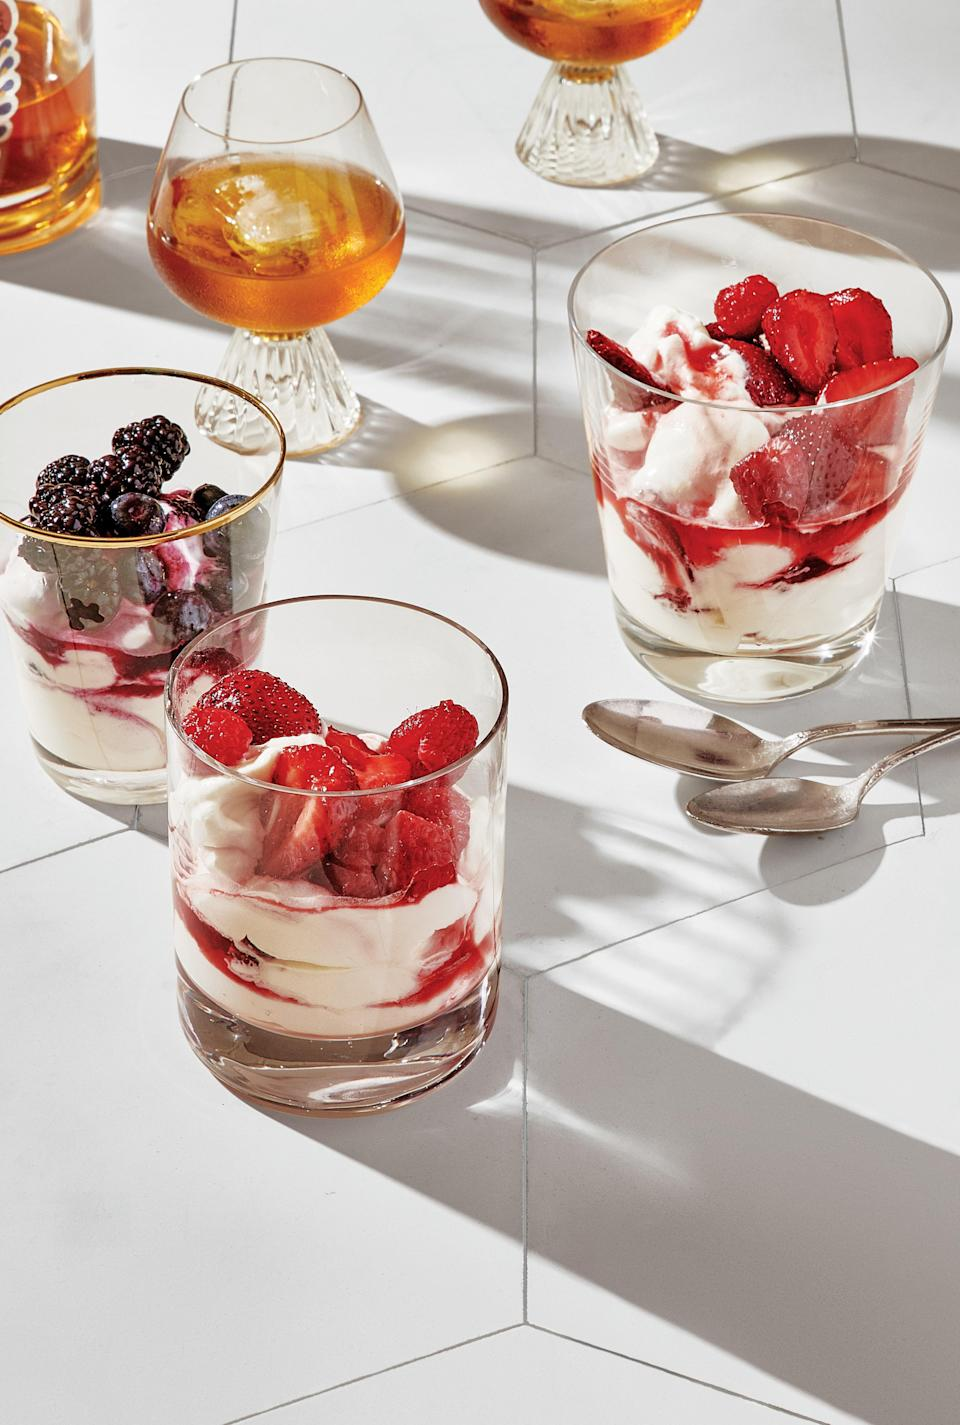 "There are few joys greater than eating ripe berries straight from the carton. But here's one: tossing them with sugar so they're juicier and sweeter, then folding them into freshly whipped cream. <a href=""https://www.epicurious.com/recipes/food/views/mix-and-match-summer-berry-and-cream-fools?mbid=synd_yahoo_rss"" rel=""nofollow noopener"" target=""_blank"" data-ylk=""slk:See recipe."" class=""link rapid-noclick-resp"">See recipe.</a>"